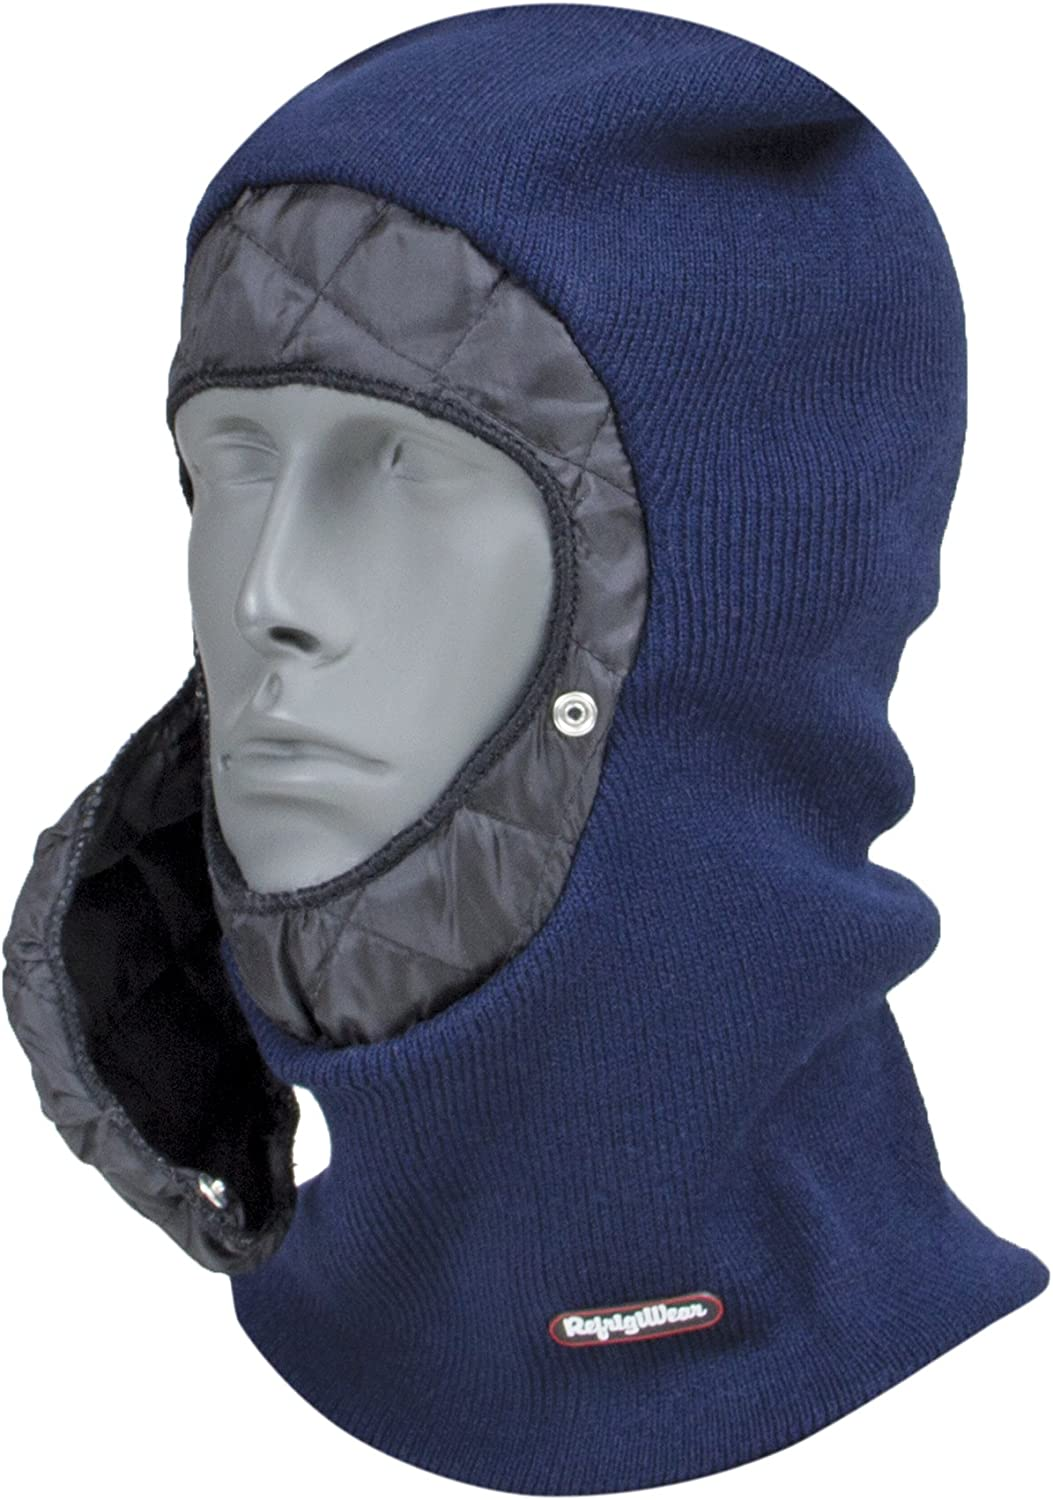 RefrigiWear Stretch Thermal Knit Balaclava Face Mask with Detachable Quilted Mouthpiece (Navy Blue, One Size Fits All)